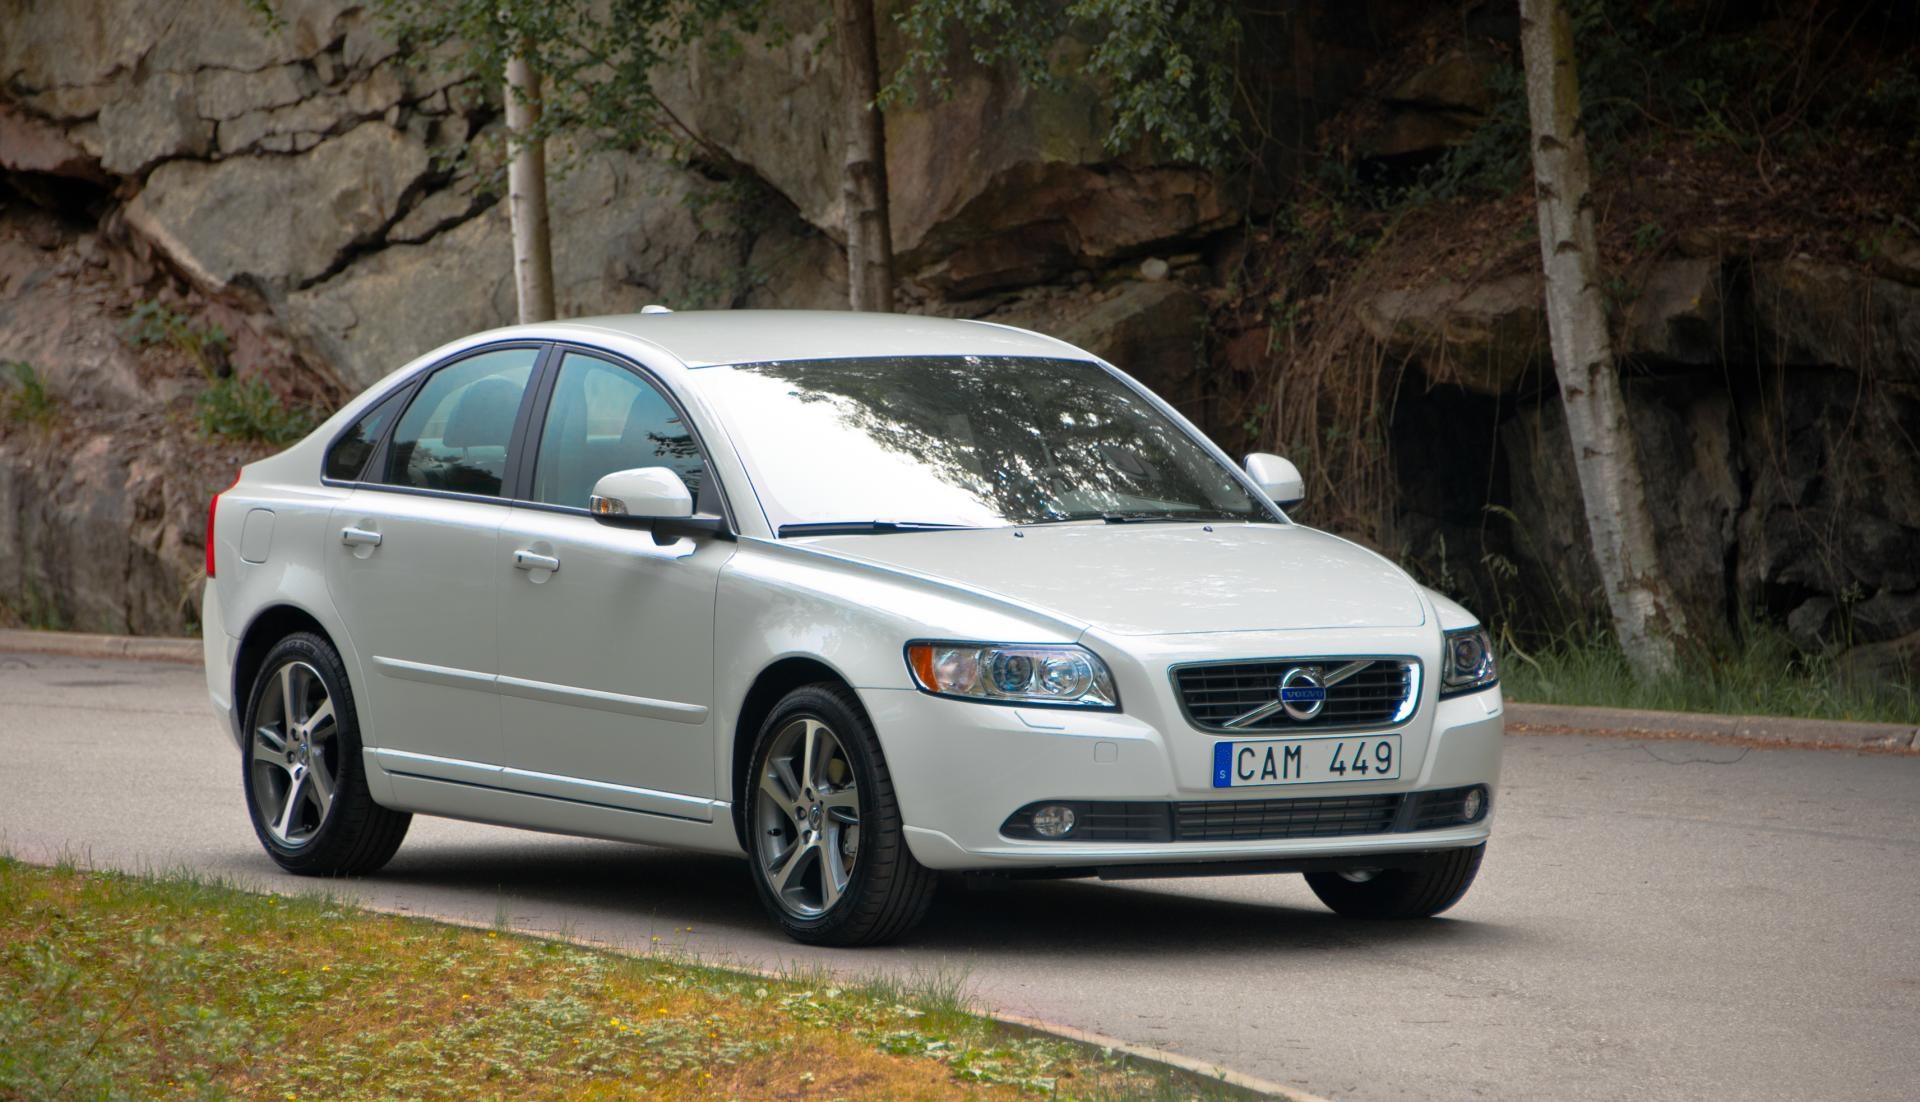 2012 Volvo S40 News and Information - conceptcarz.com